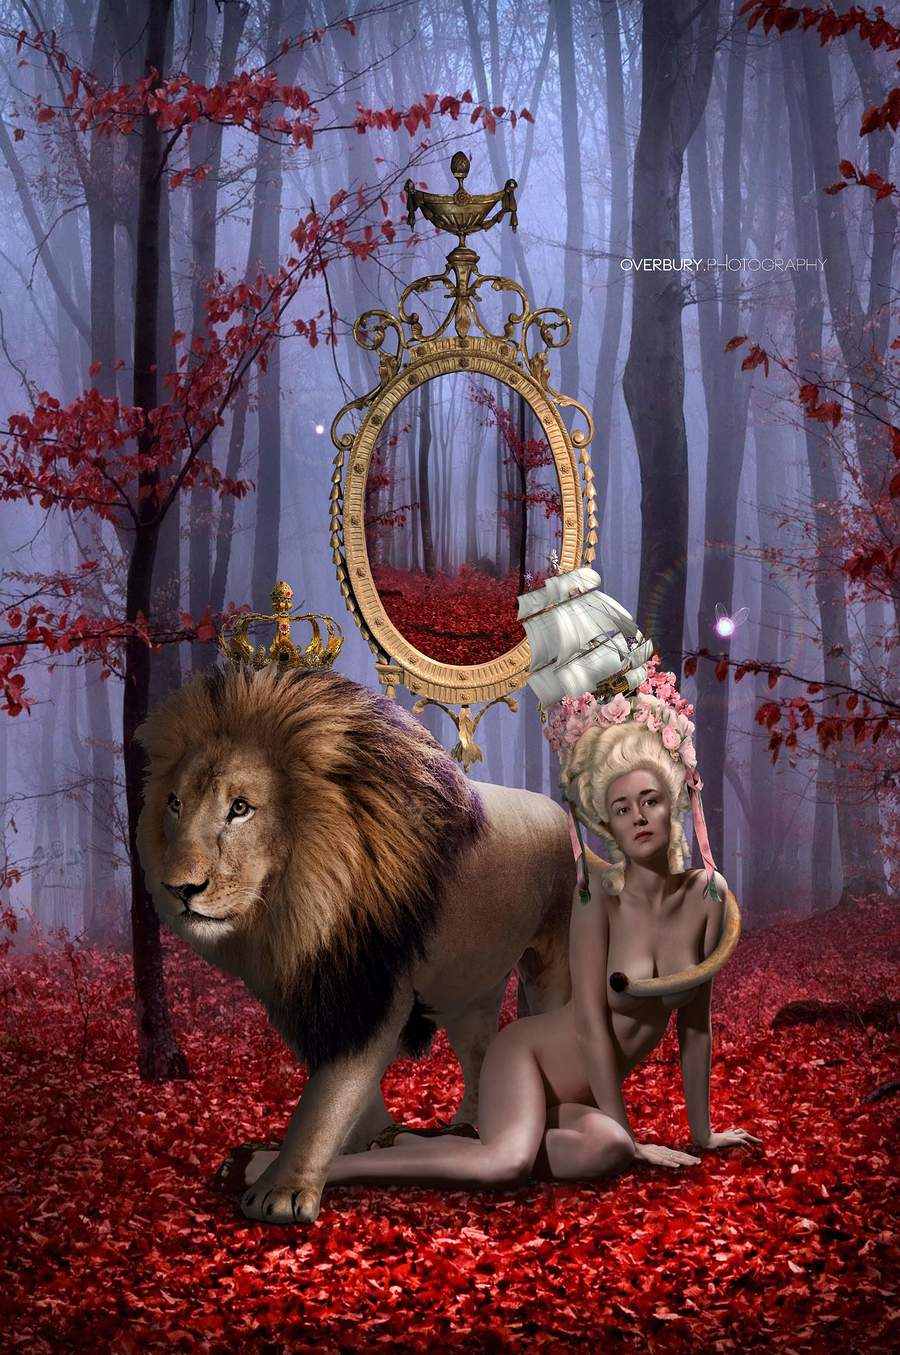 The lion the witch and the mirror / Photography by Overbury Photography, Post processing by Overbury Photography / Uploaded 19th June 2020 @ 09:24 PM